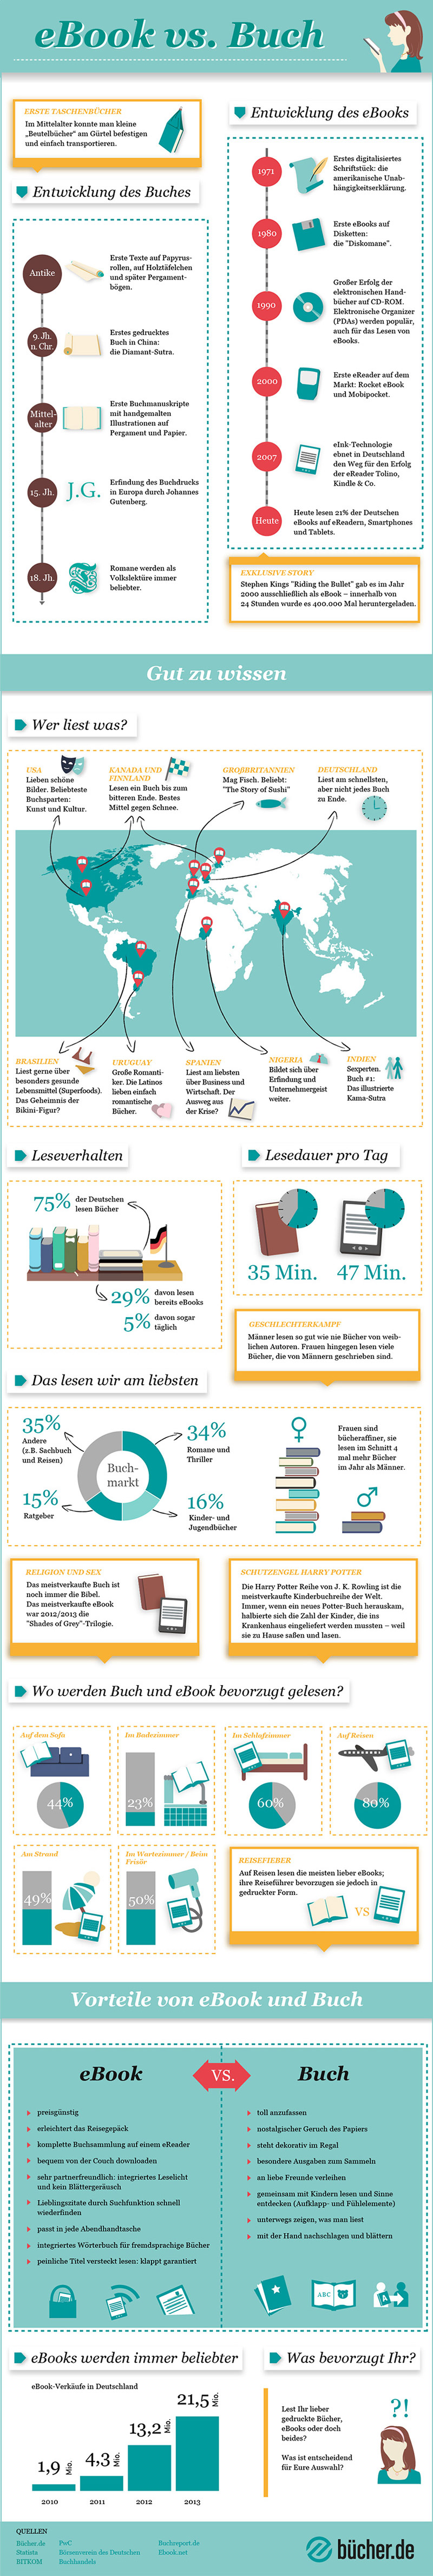 http://bilder.buecher.de/images/aktion/ebook_vs_buch/infografik_all.jpg;r